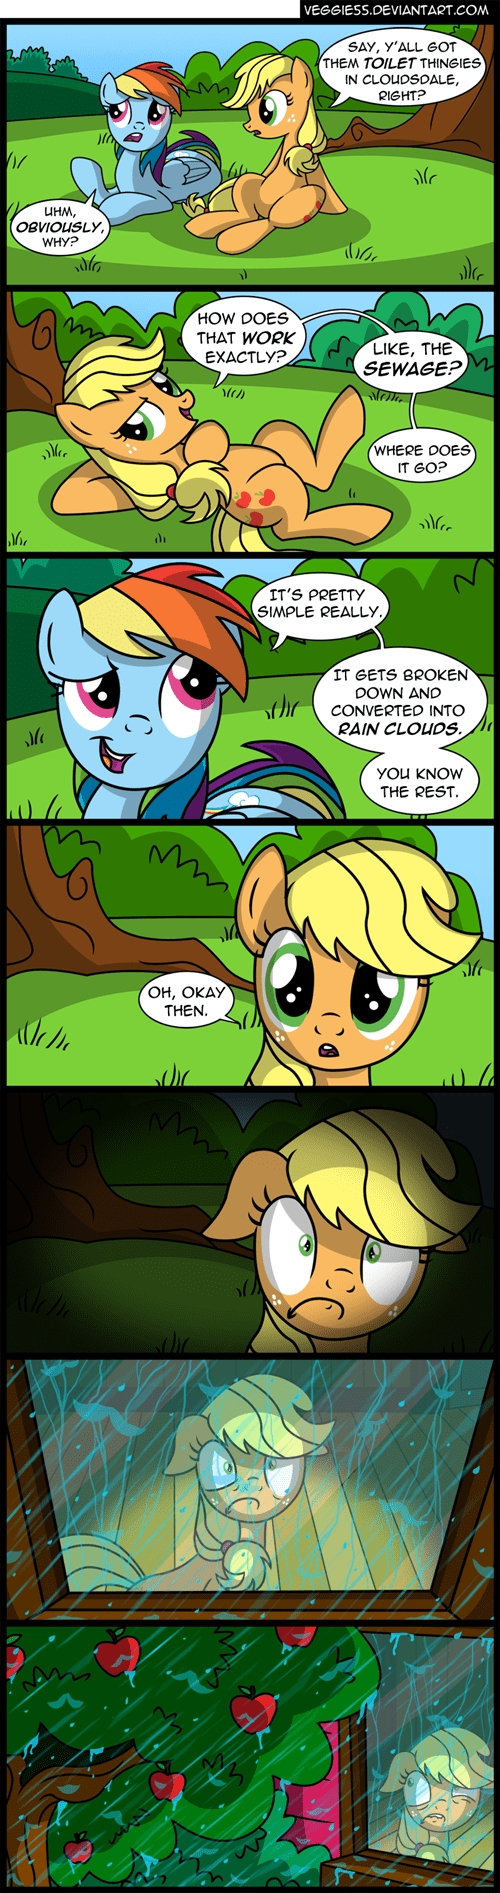 my-little-pony-where-does-sewage-in-cloudsdale-go